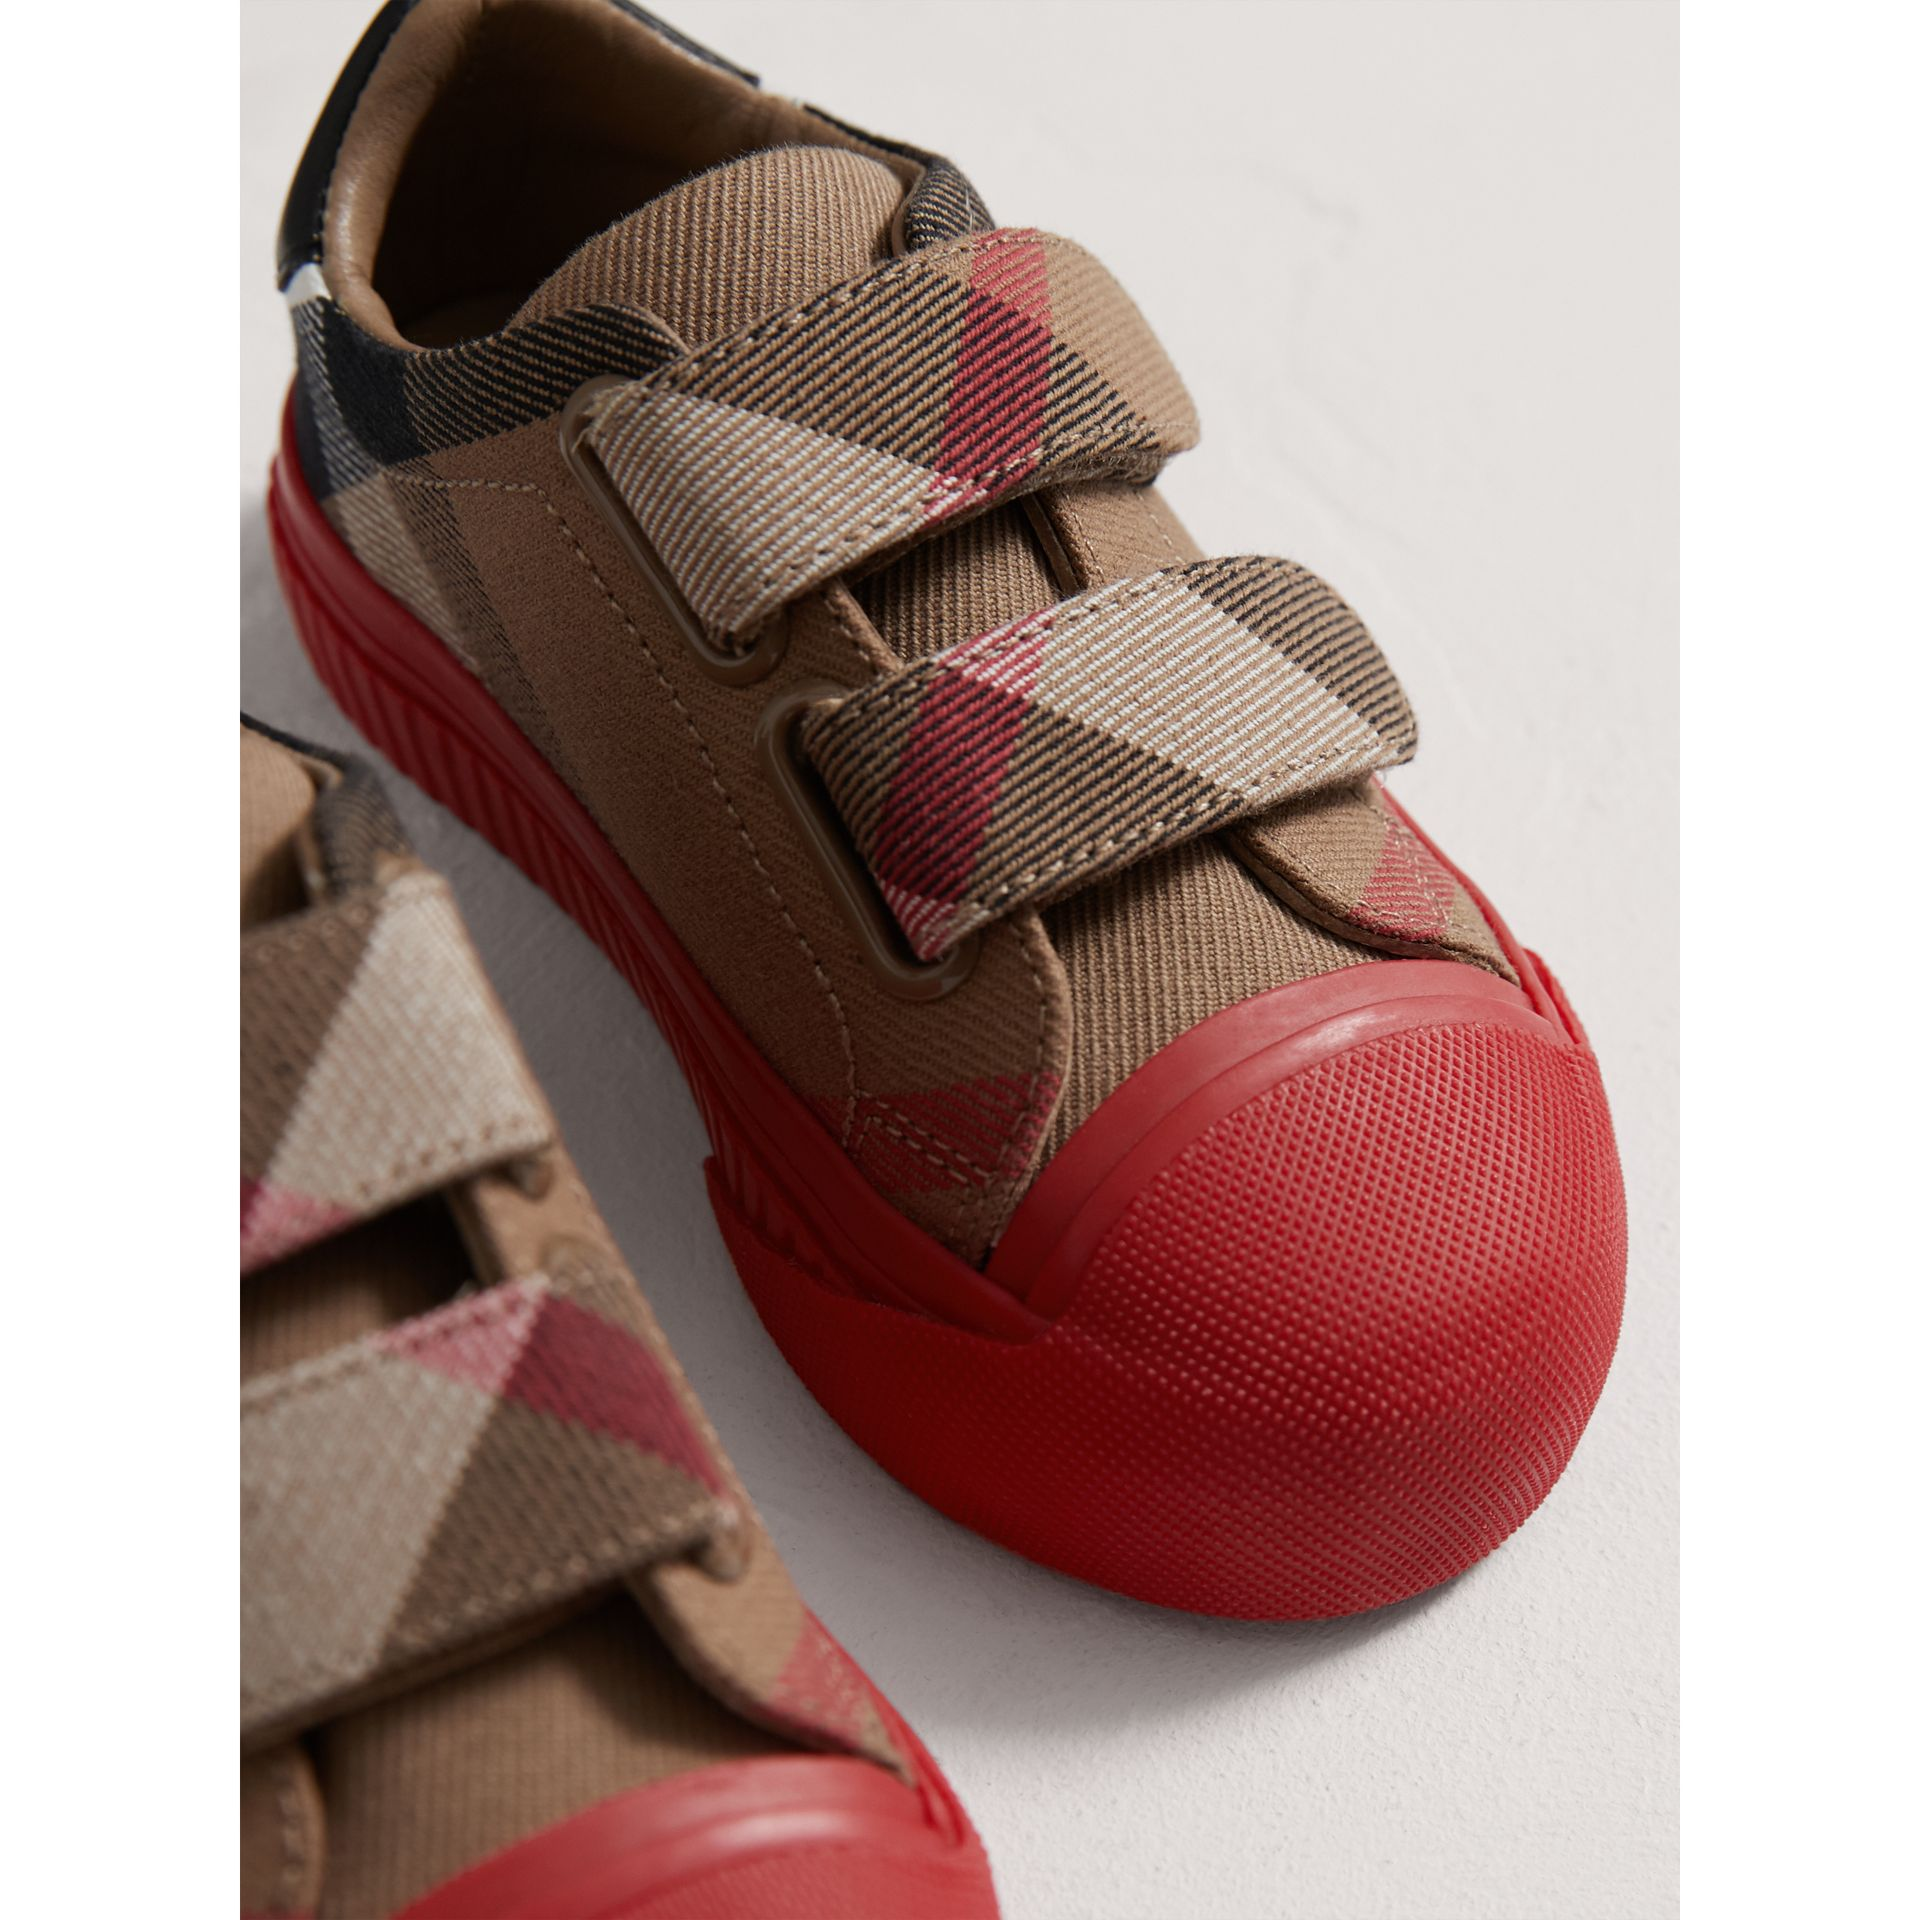 House Check and Leather Sneakers in Classic/parade Red | Burberry - gallery image 3